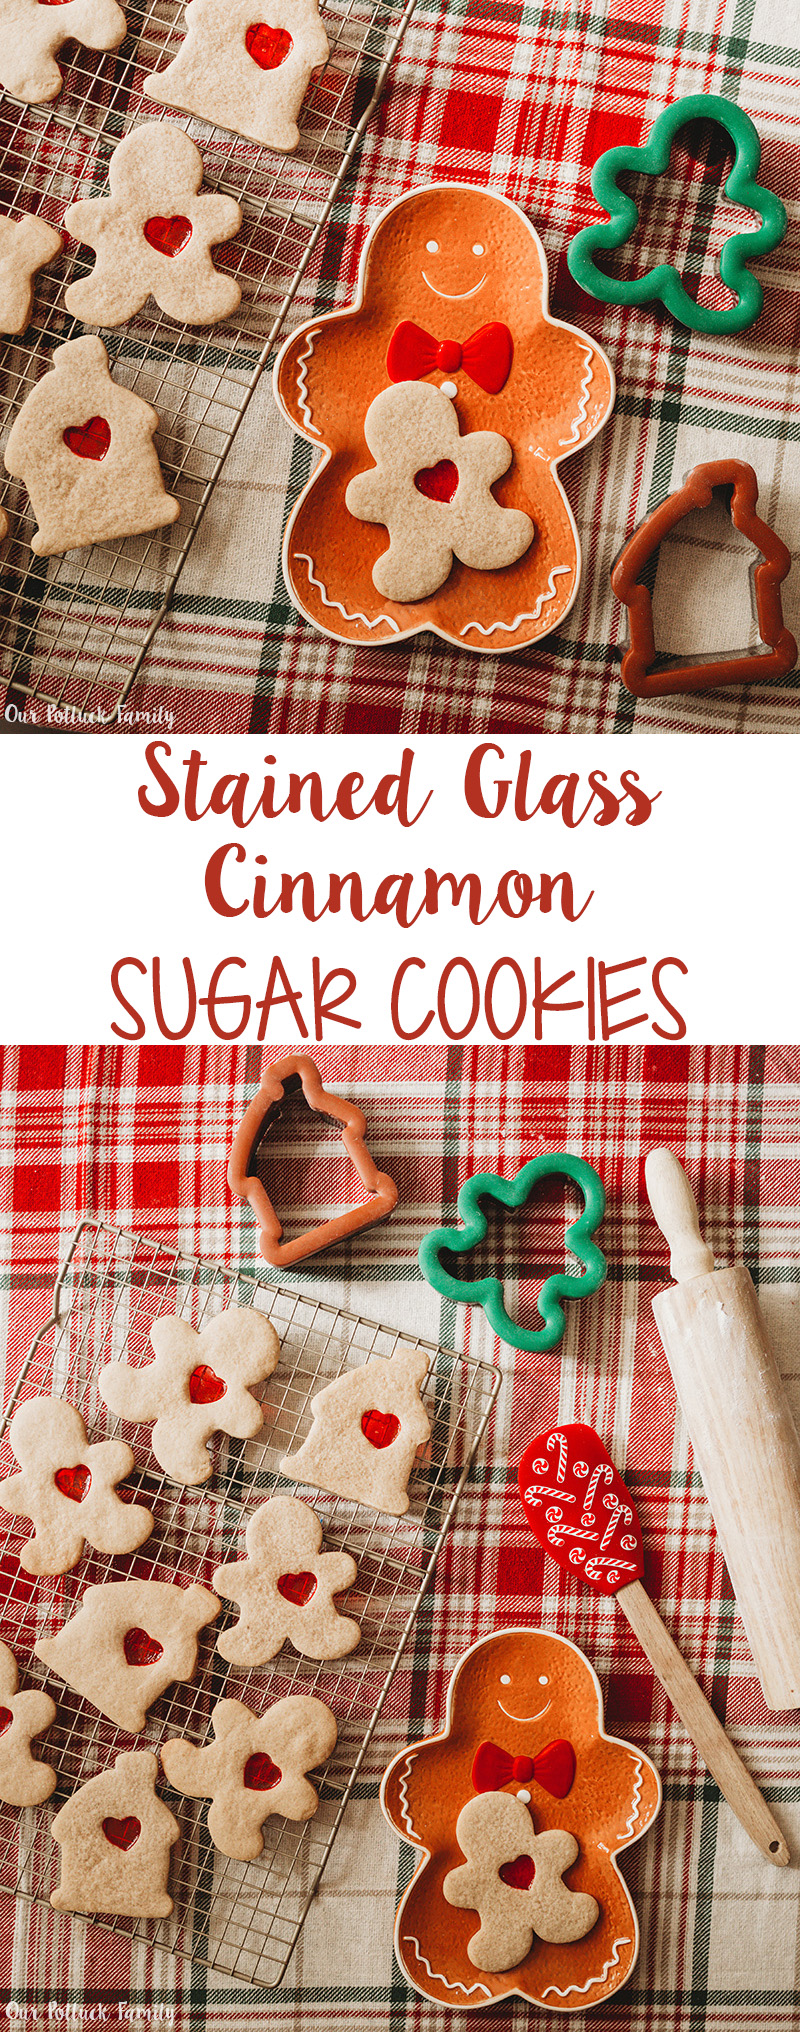 Stained Glass Cinnamon Sugar Cookies